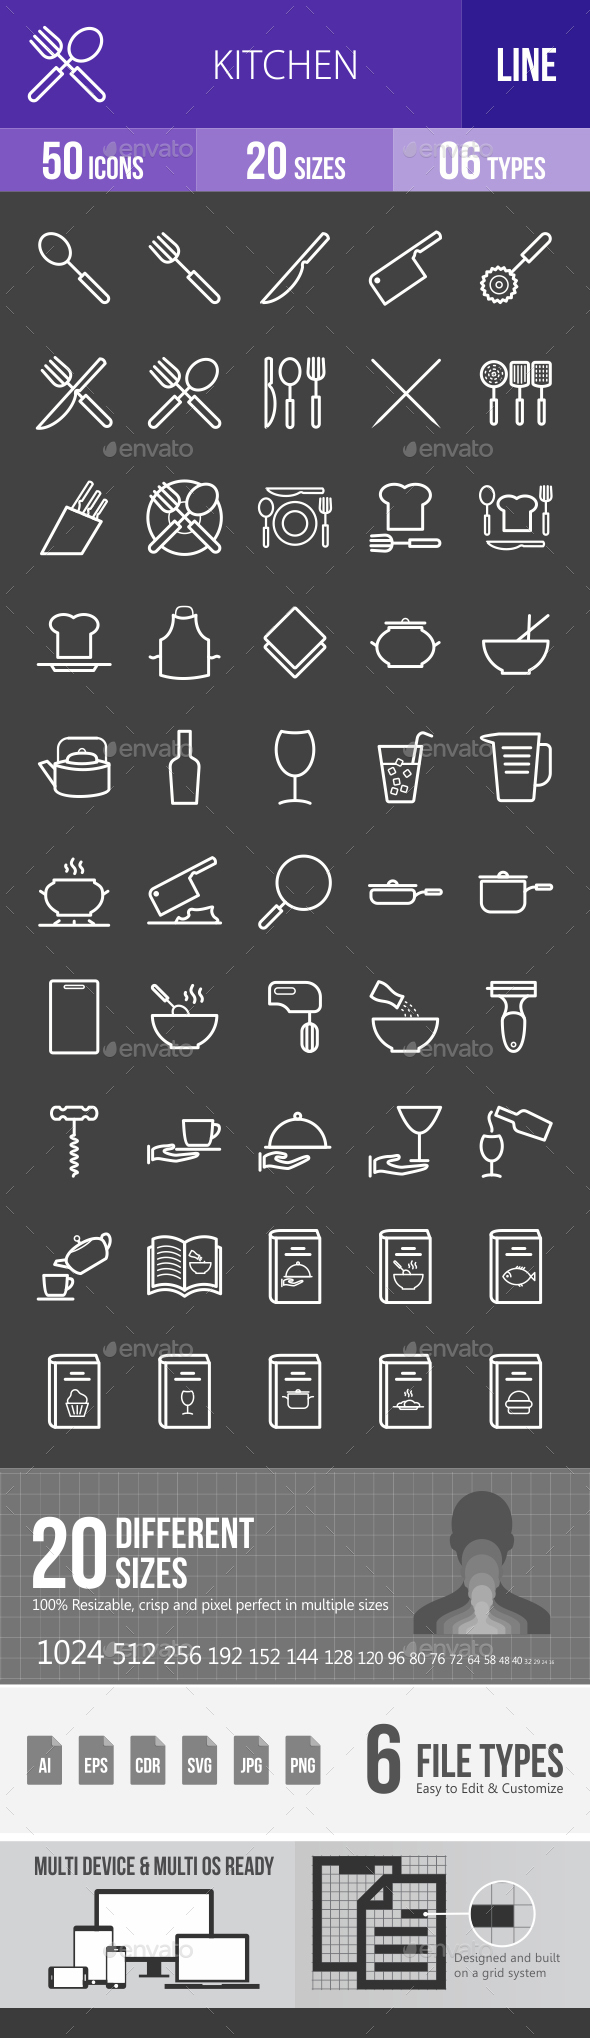 Kitchen Line Inverted Icons - Icons